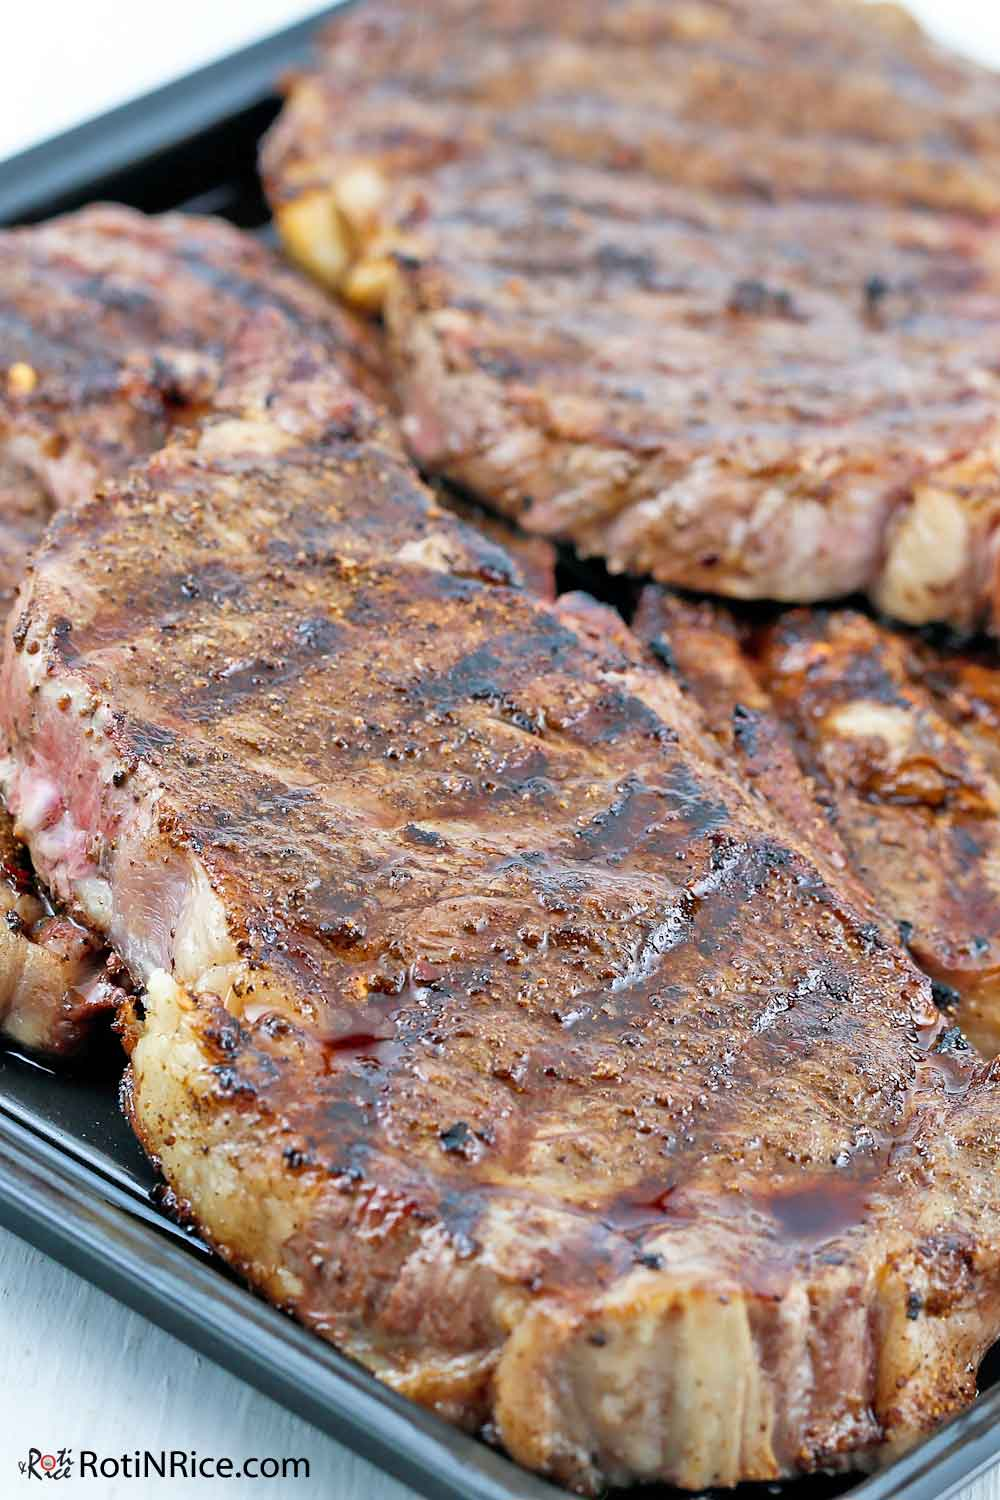 Grilled New York Strip Steaks with Homemade Spice Rub hot off the grill.